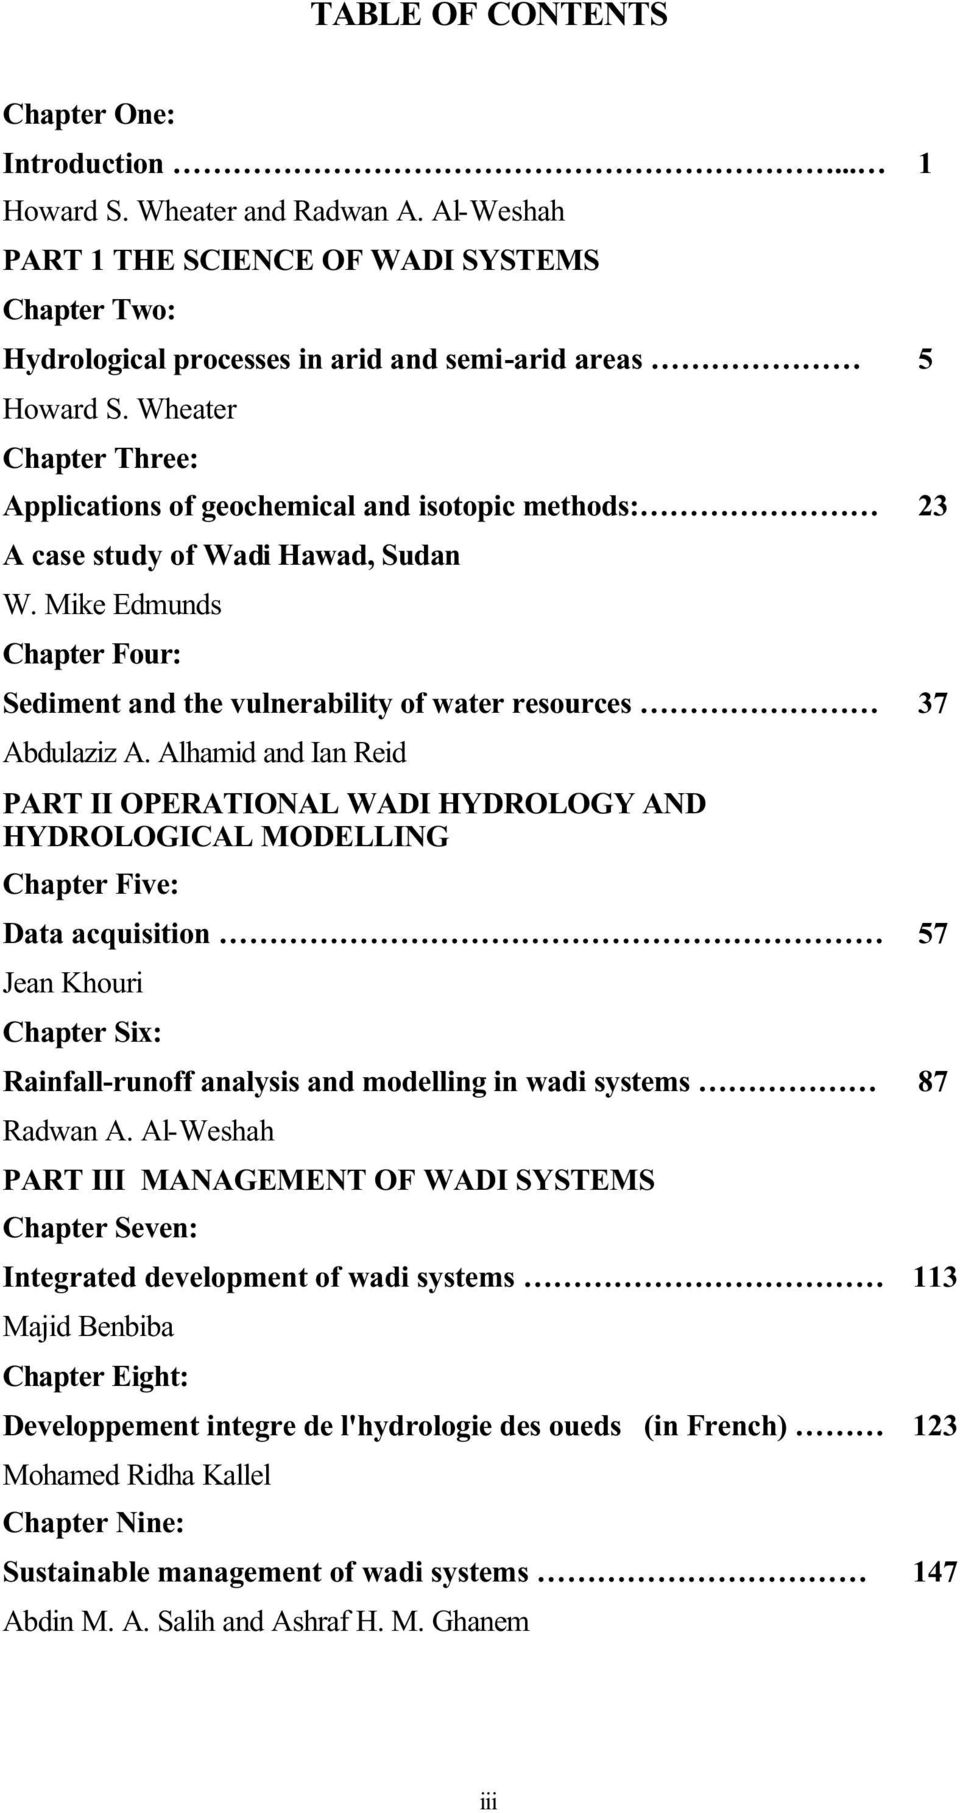 Alhamid and Ian Reid PART II OPERATIONAL WADI HYDROLOGY AND HYDROLOGICAL MODELLING Chapter Five: Data acquisition Jean Khouri Chapter Six: Rainfall-runoff analysis and modelling in wadi systems